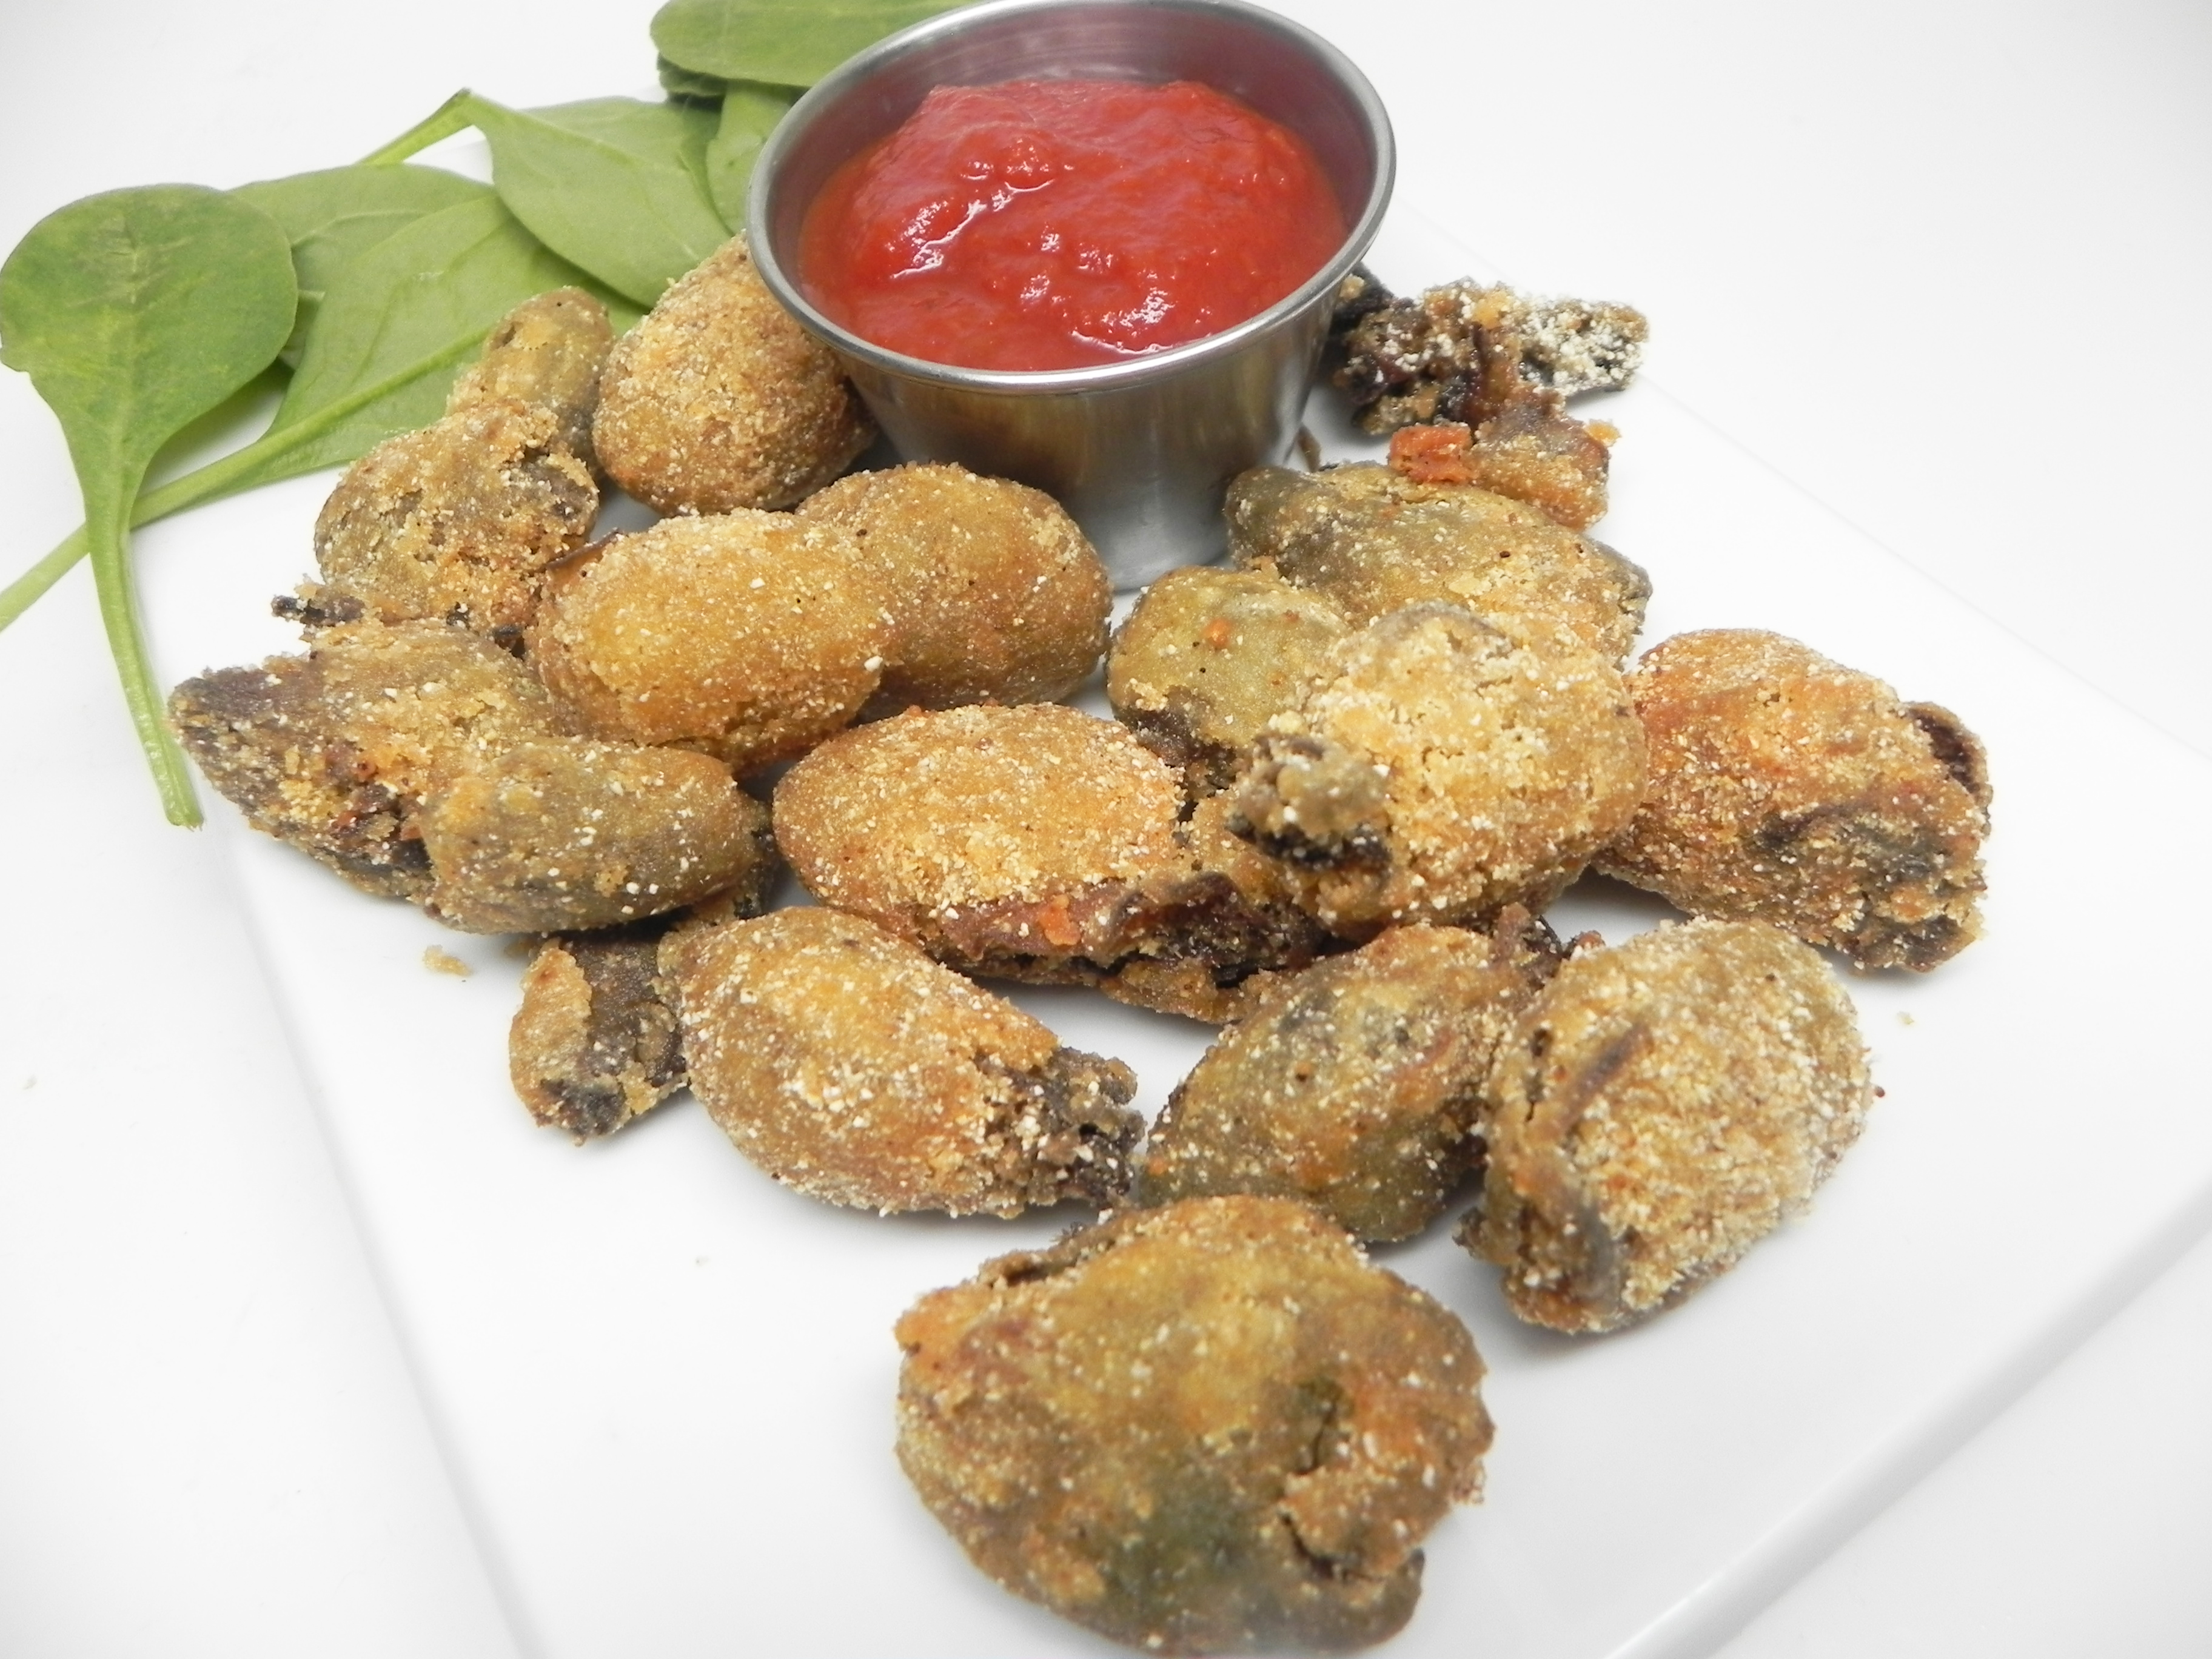 """These Southern-style deep-fried oysters get a spicy cornmeal coating, starring Cajun seasoning. Fry them up to golden and crispy. """"This came out wonderful,"""" says WONK. """"Will be eating these again and again."""""""